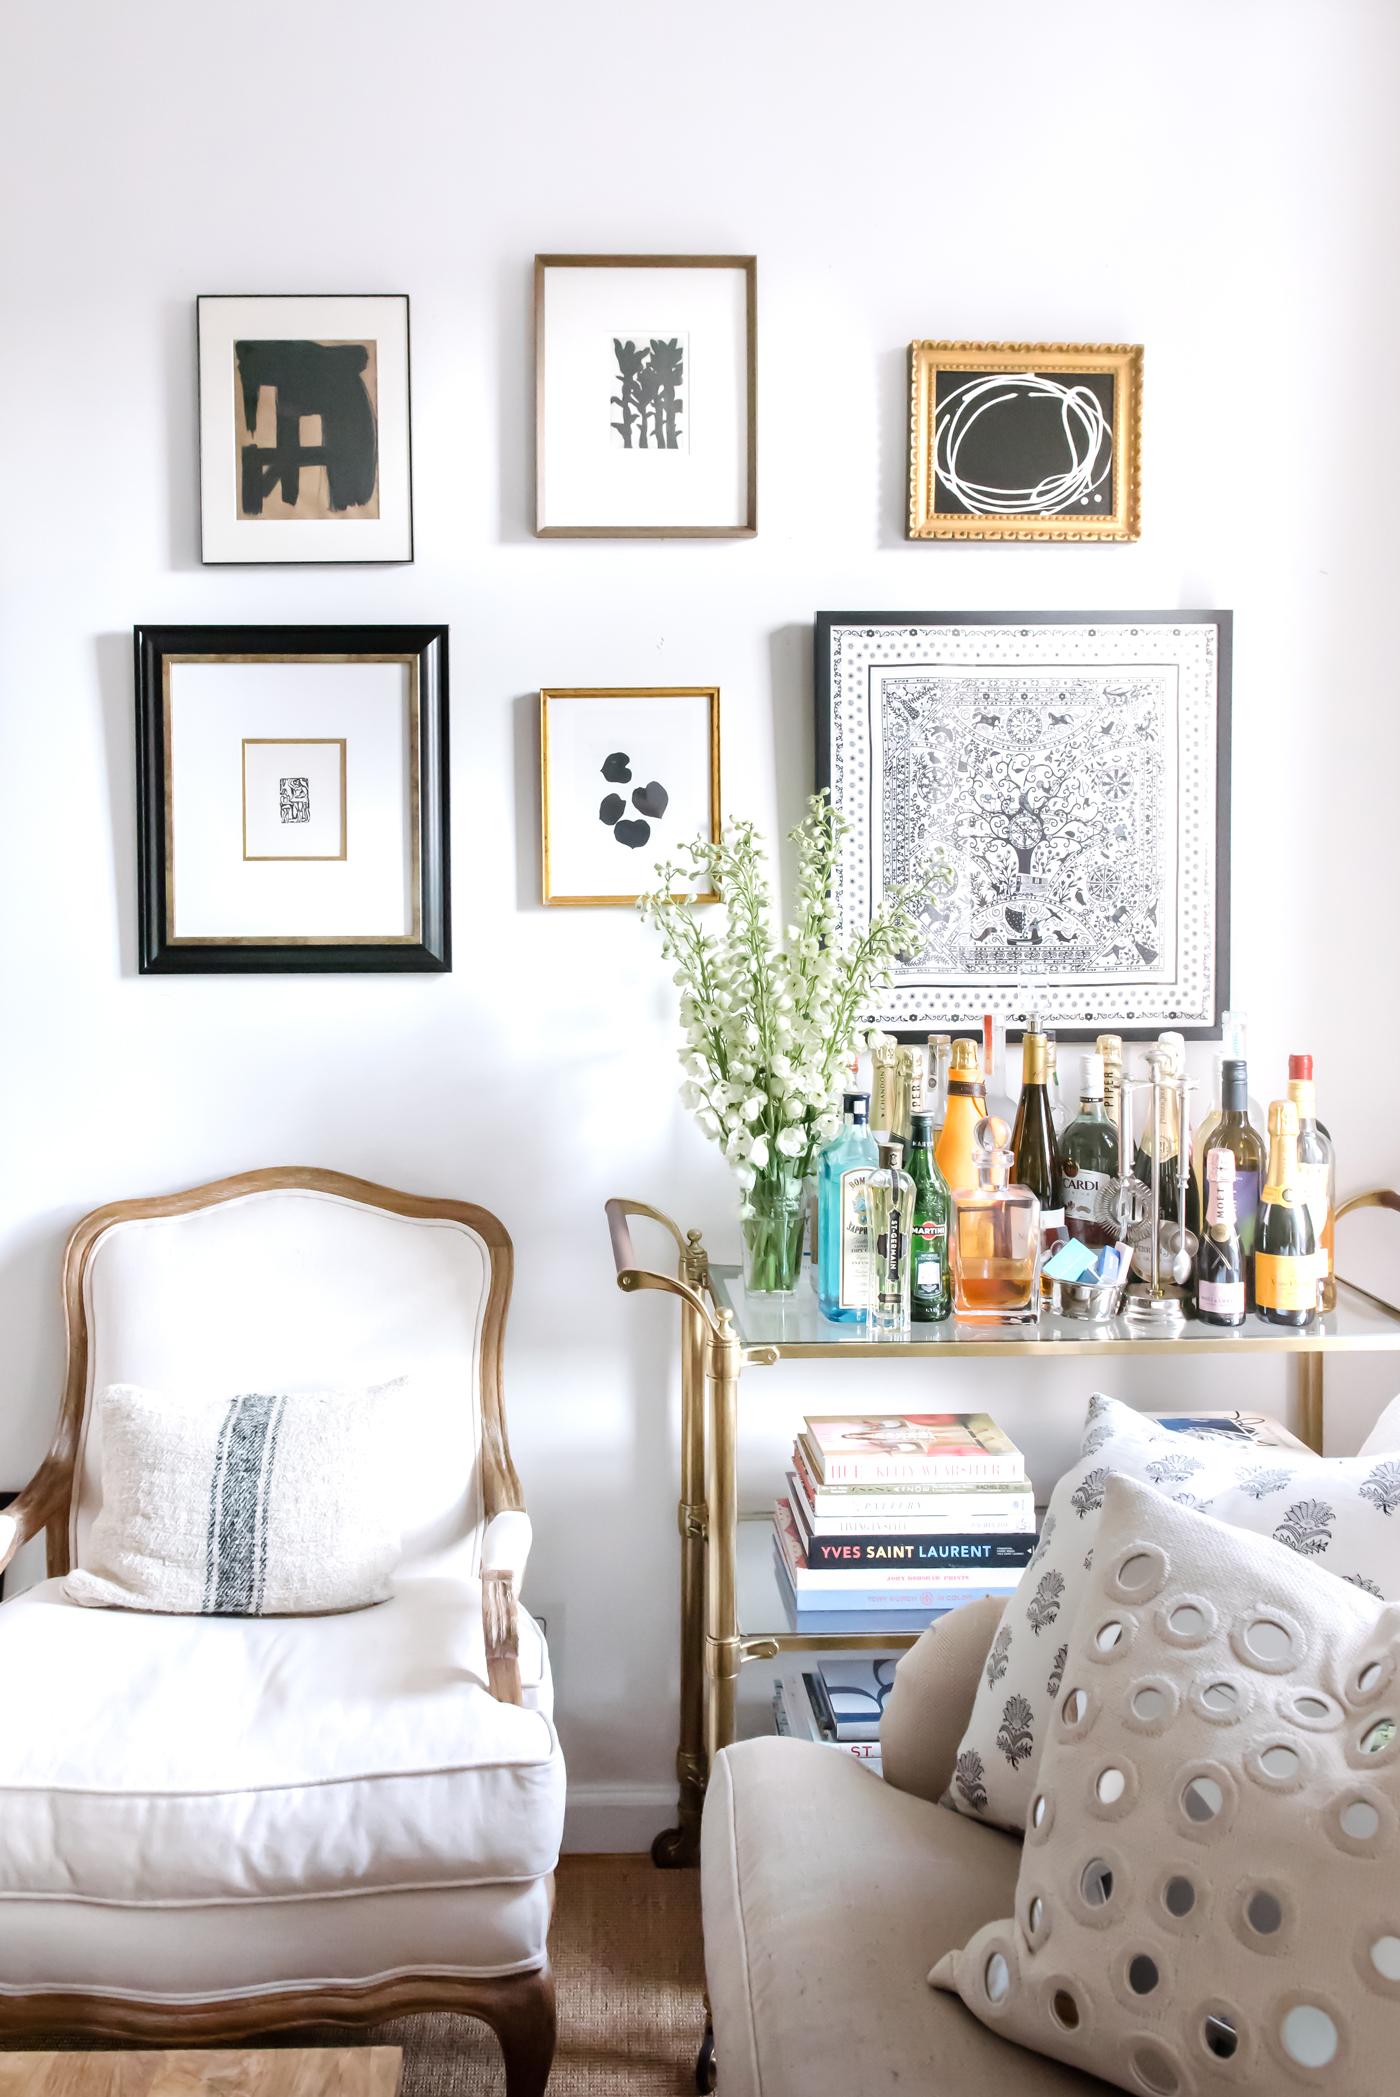 with love from kat // my nyc apartment pt. 3